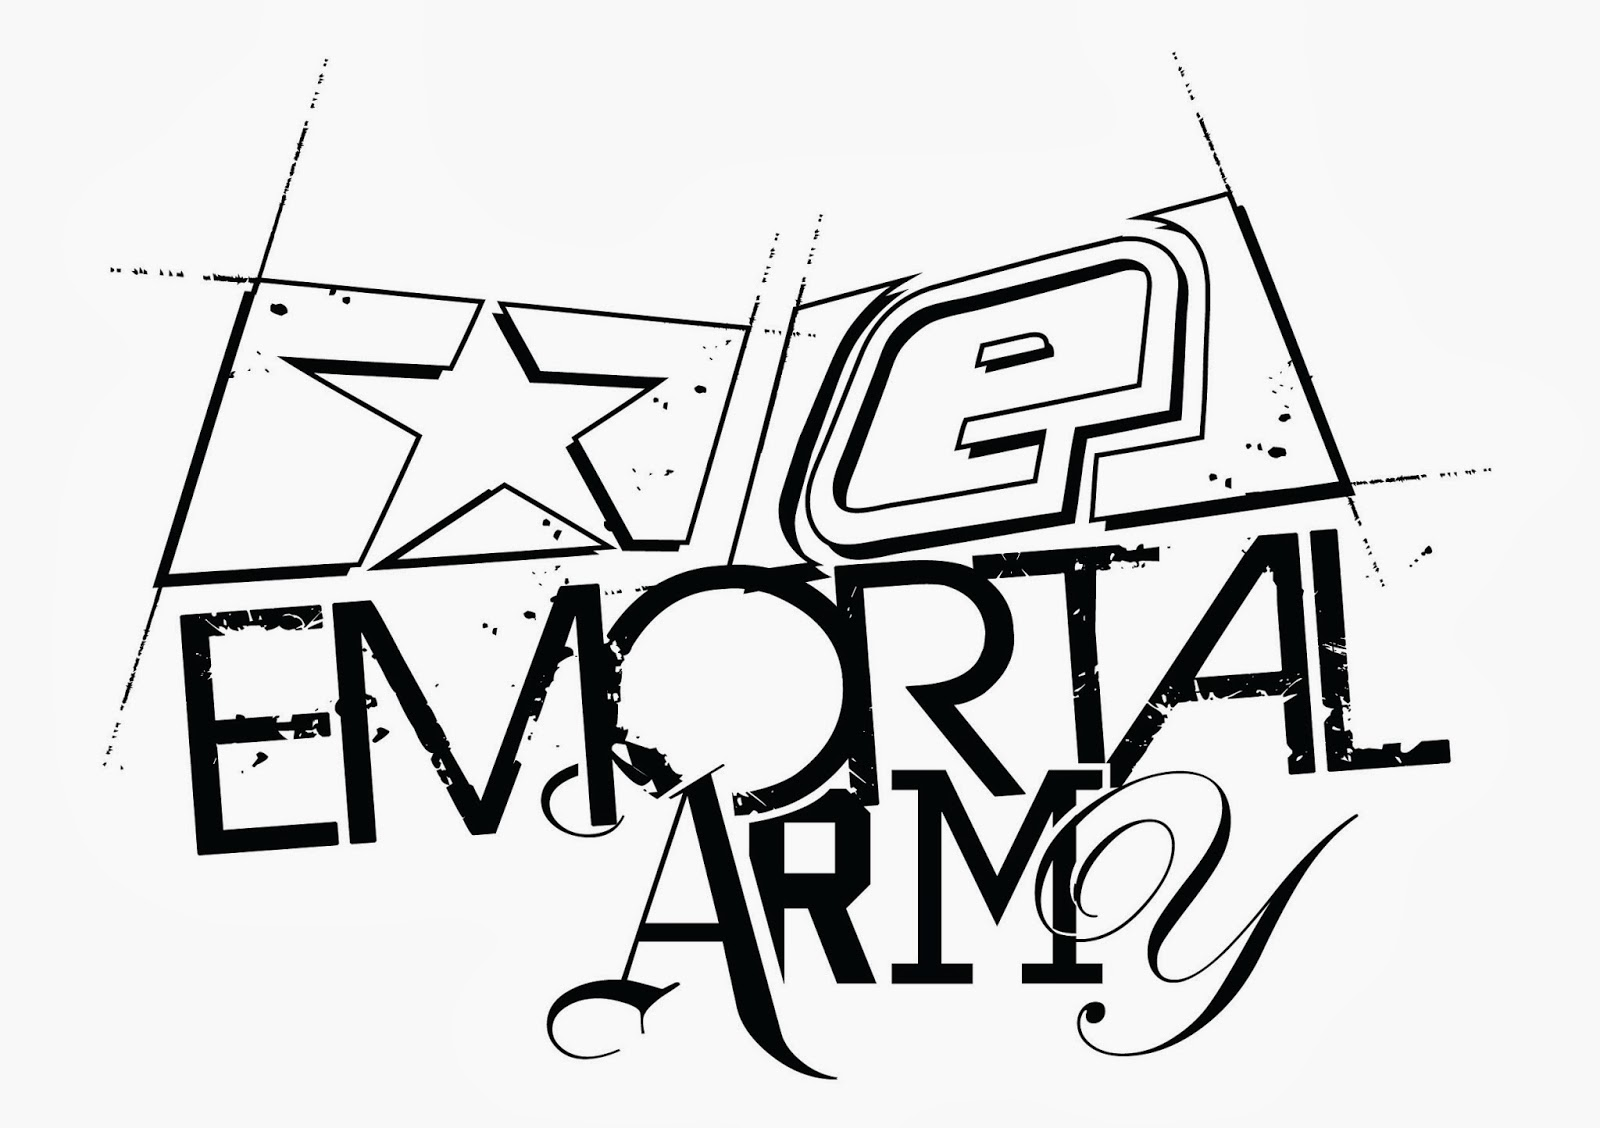 SPS Joins the Emortal Army